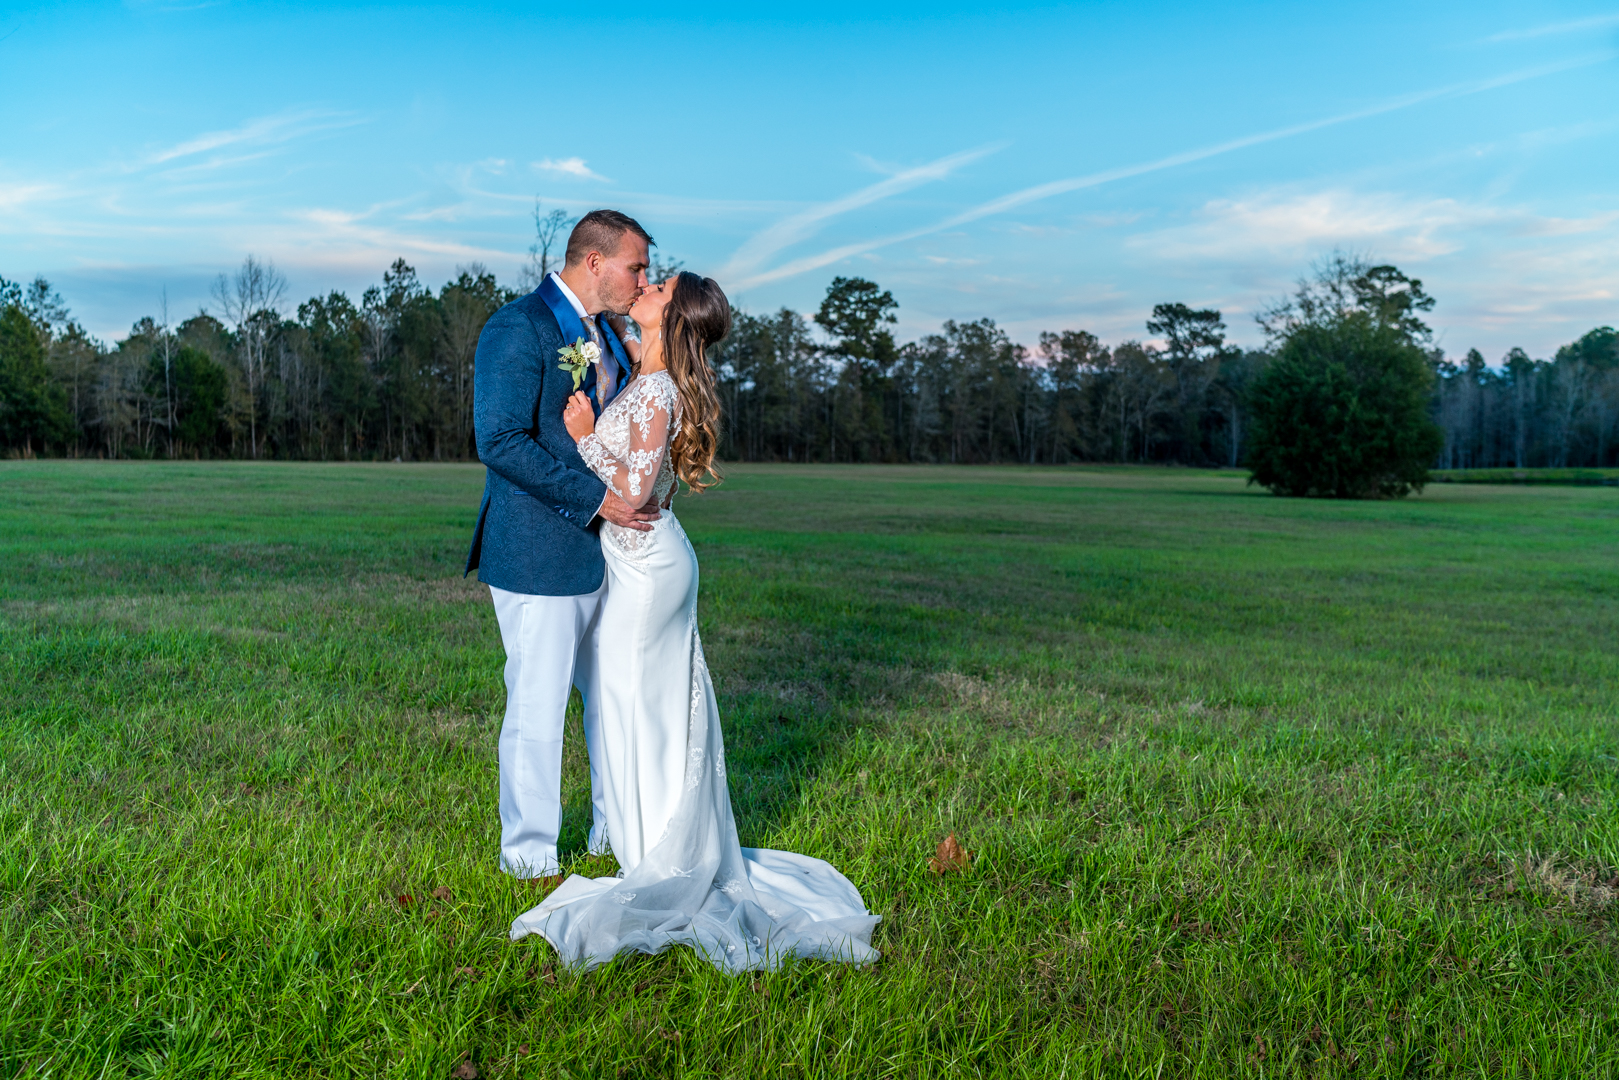 wedding-photographers-pensacola-53.jpg